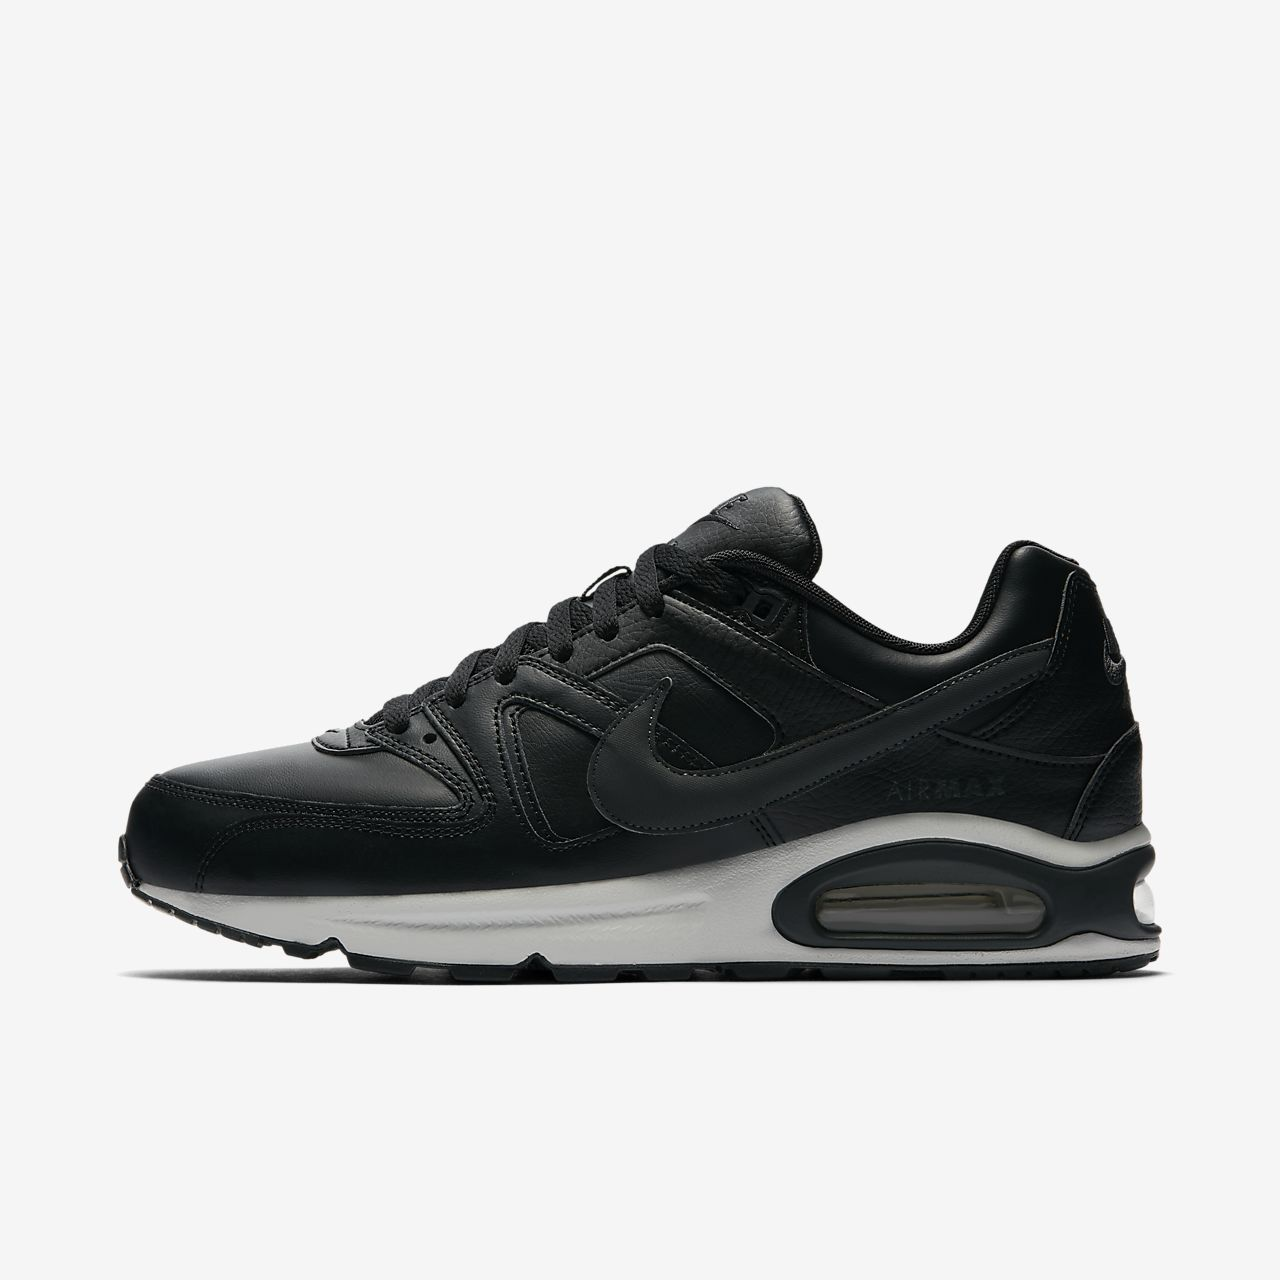 sneakers for cheap ff010 1e004 ... Chaussure Nike Air Max Command pour Homme